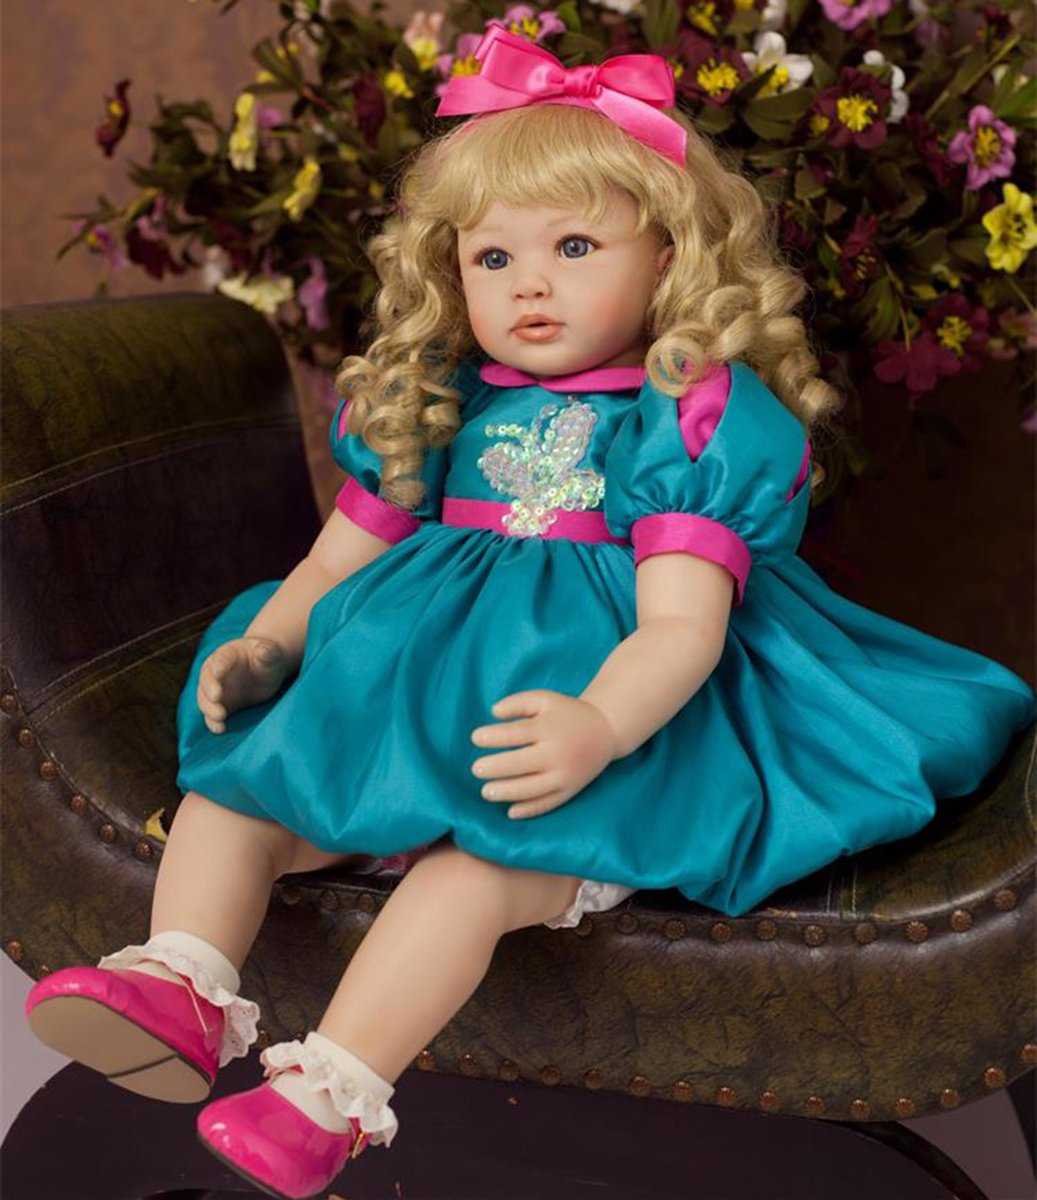 Pursue Baby Beautiful Soft Body Real Looking Reborn Toddler Girl Doll with Blonde Curly Hair Isabella, 24 Inch Lifelike Princess Girl Doll with Matching Outfits